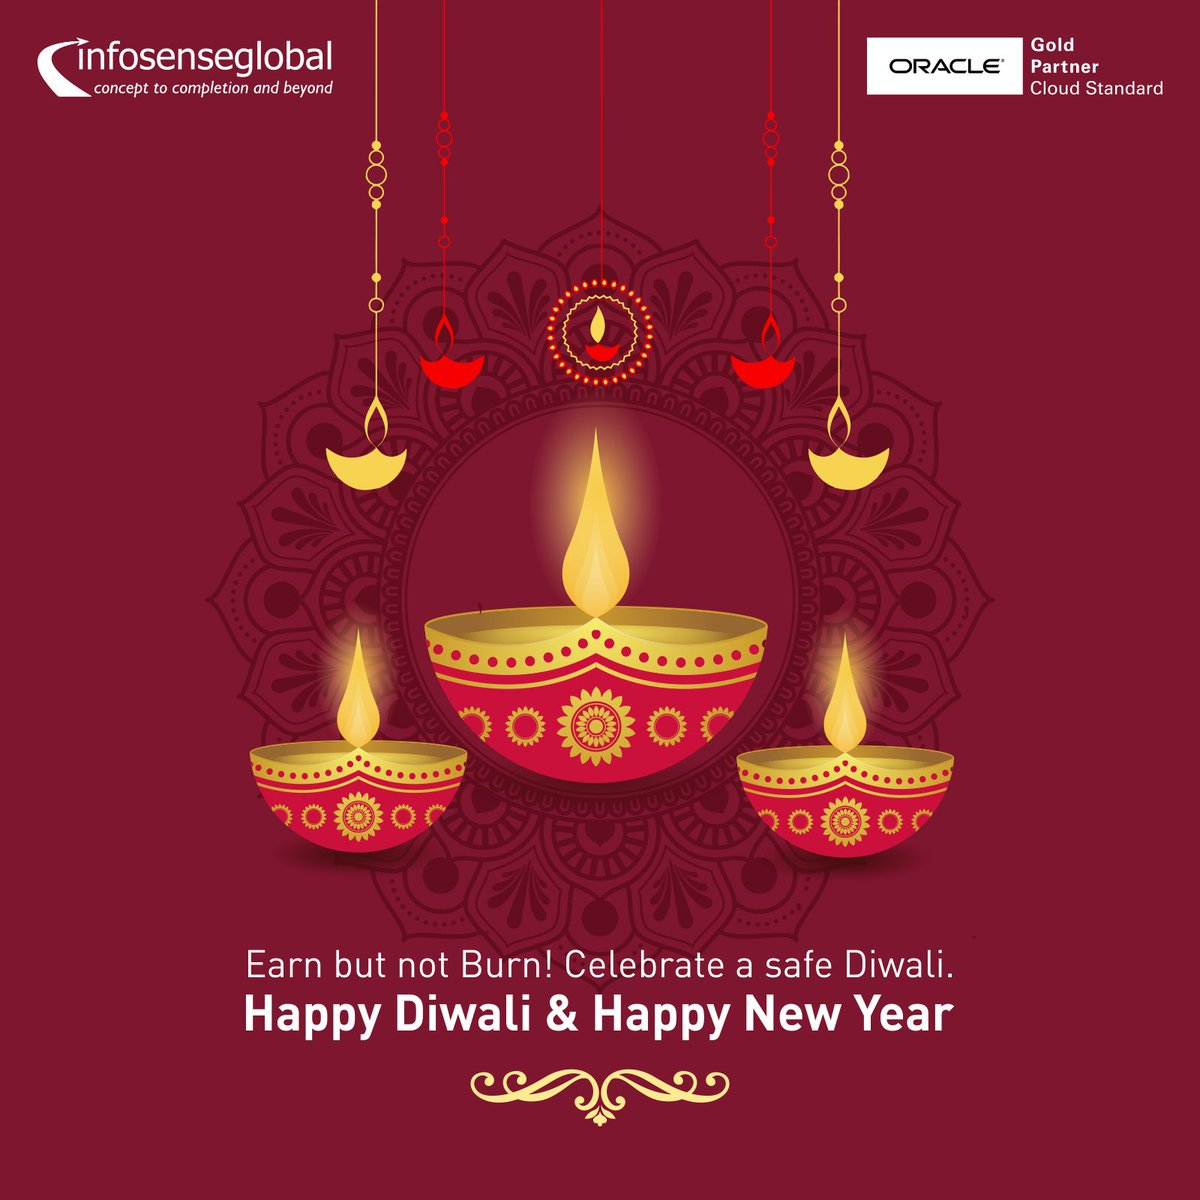 Happy New Year And Happy Diwali Images 21